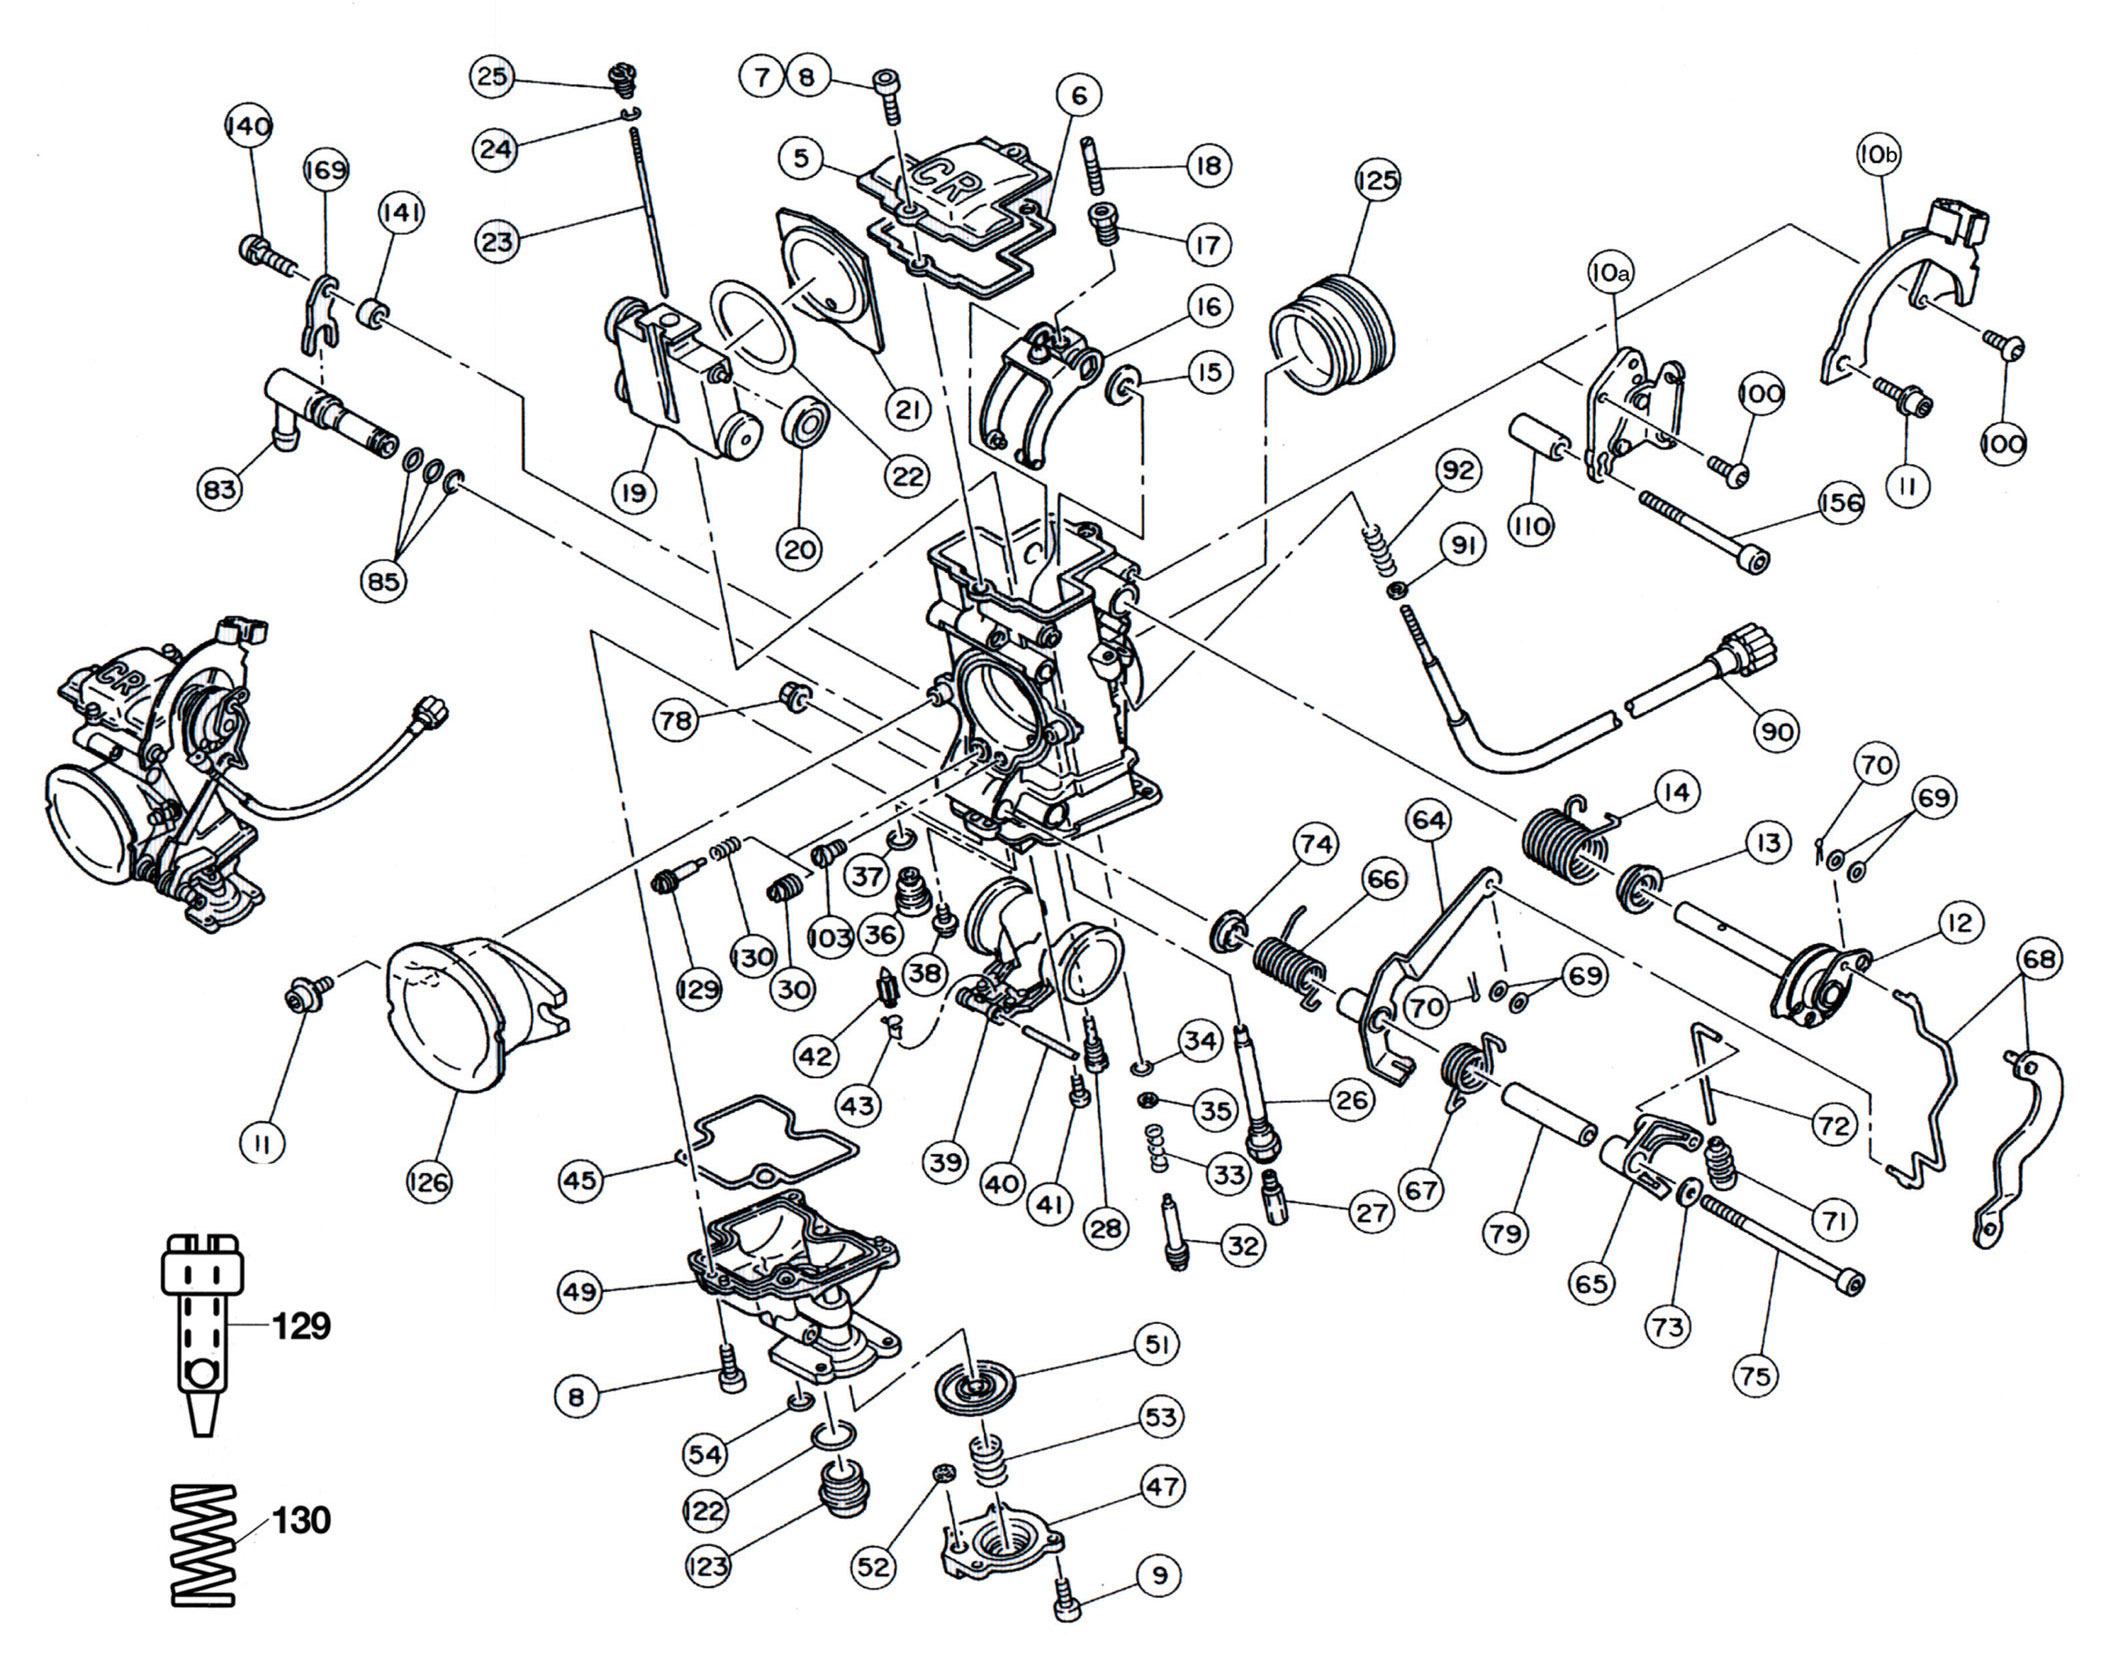 EXPLODED VIEW, PARTS DIAGRAM: single Keihin FCR racing 28